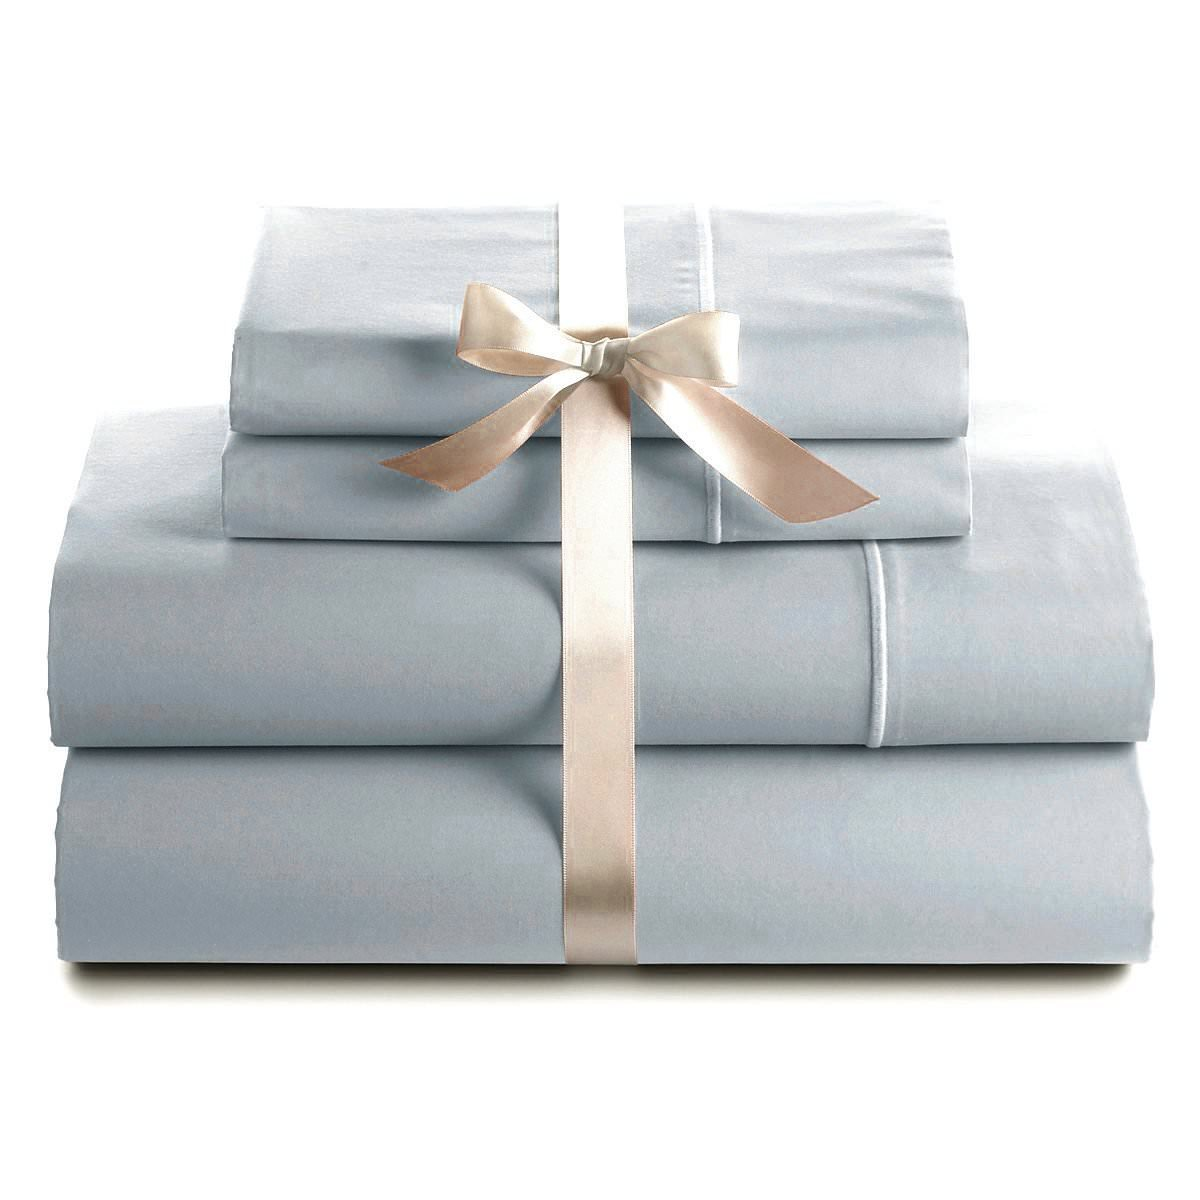 Bluemoon Homes Genuine Premium Egyptian cotton 1000 Thread Count Italian Finish Silver Grey 4-Piece Sheet Set, 19 inches Deep Pocket, Solid, Size Full